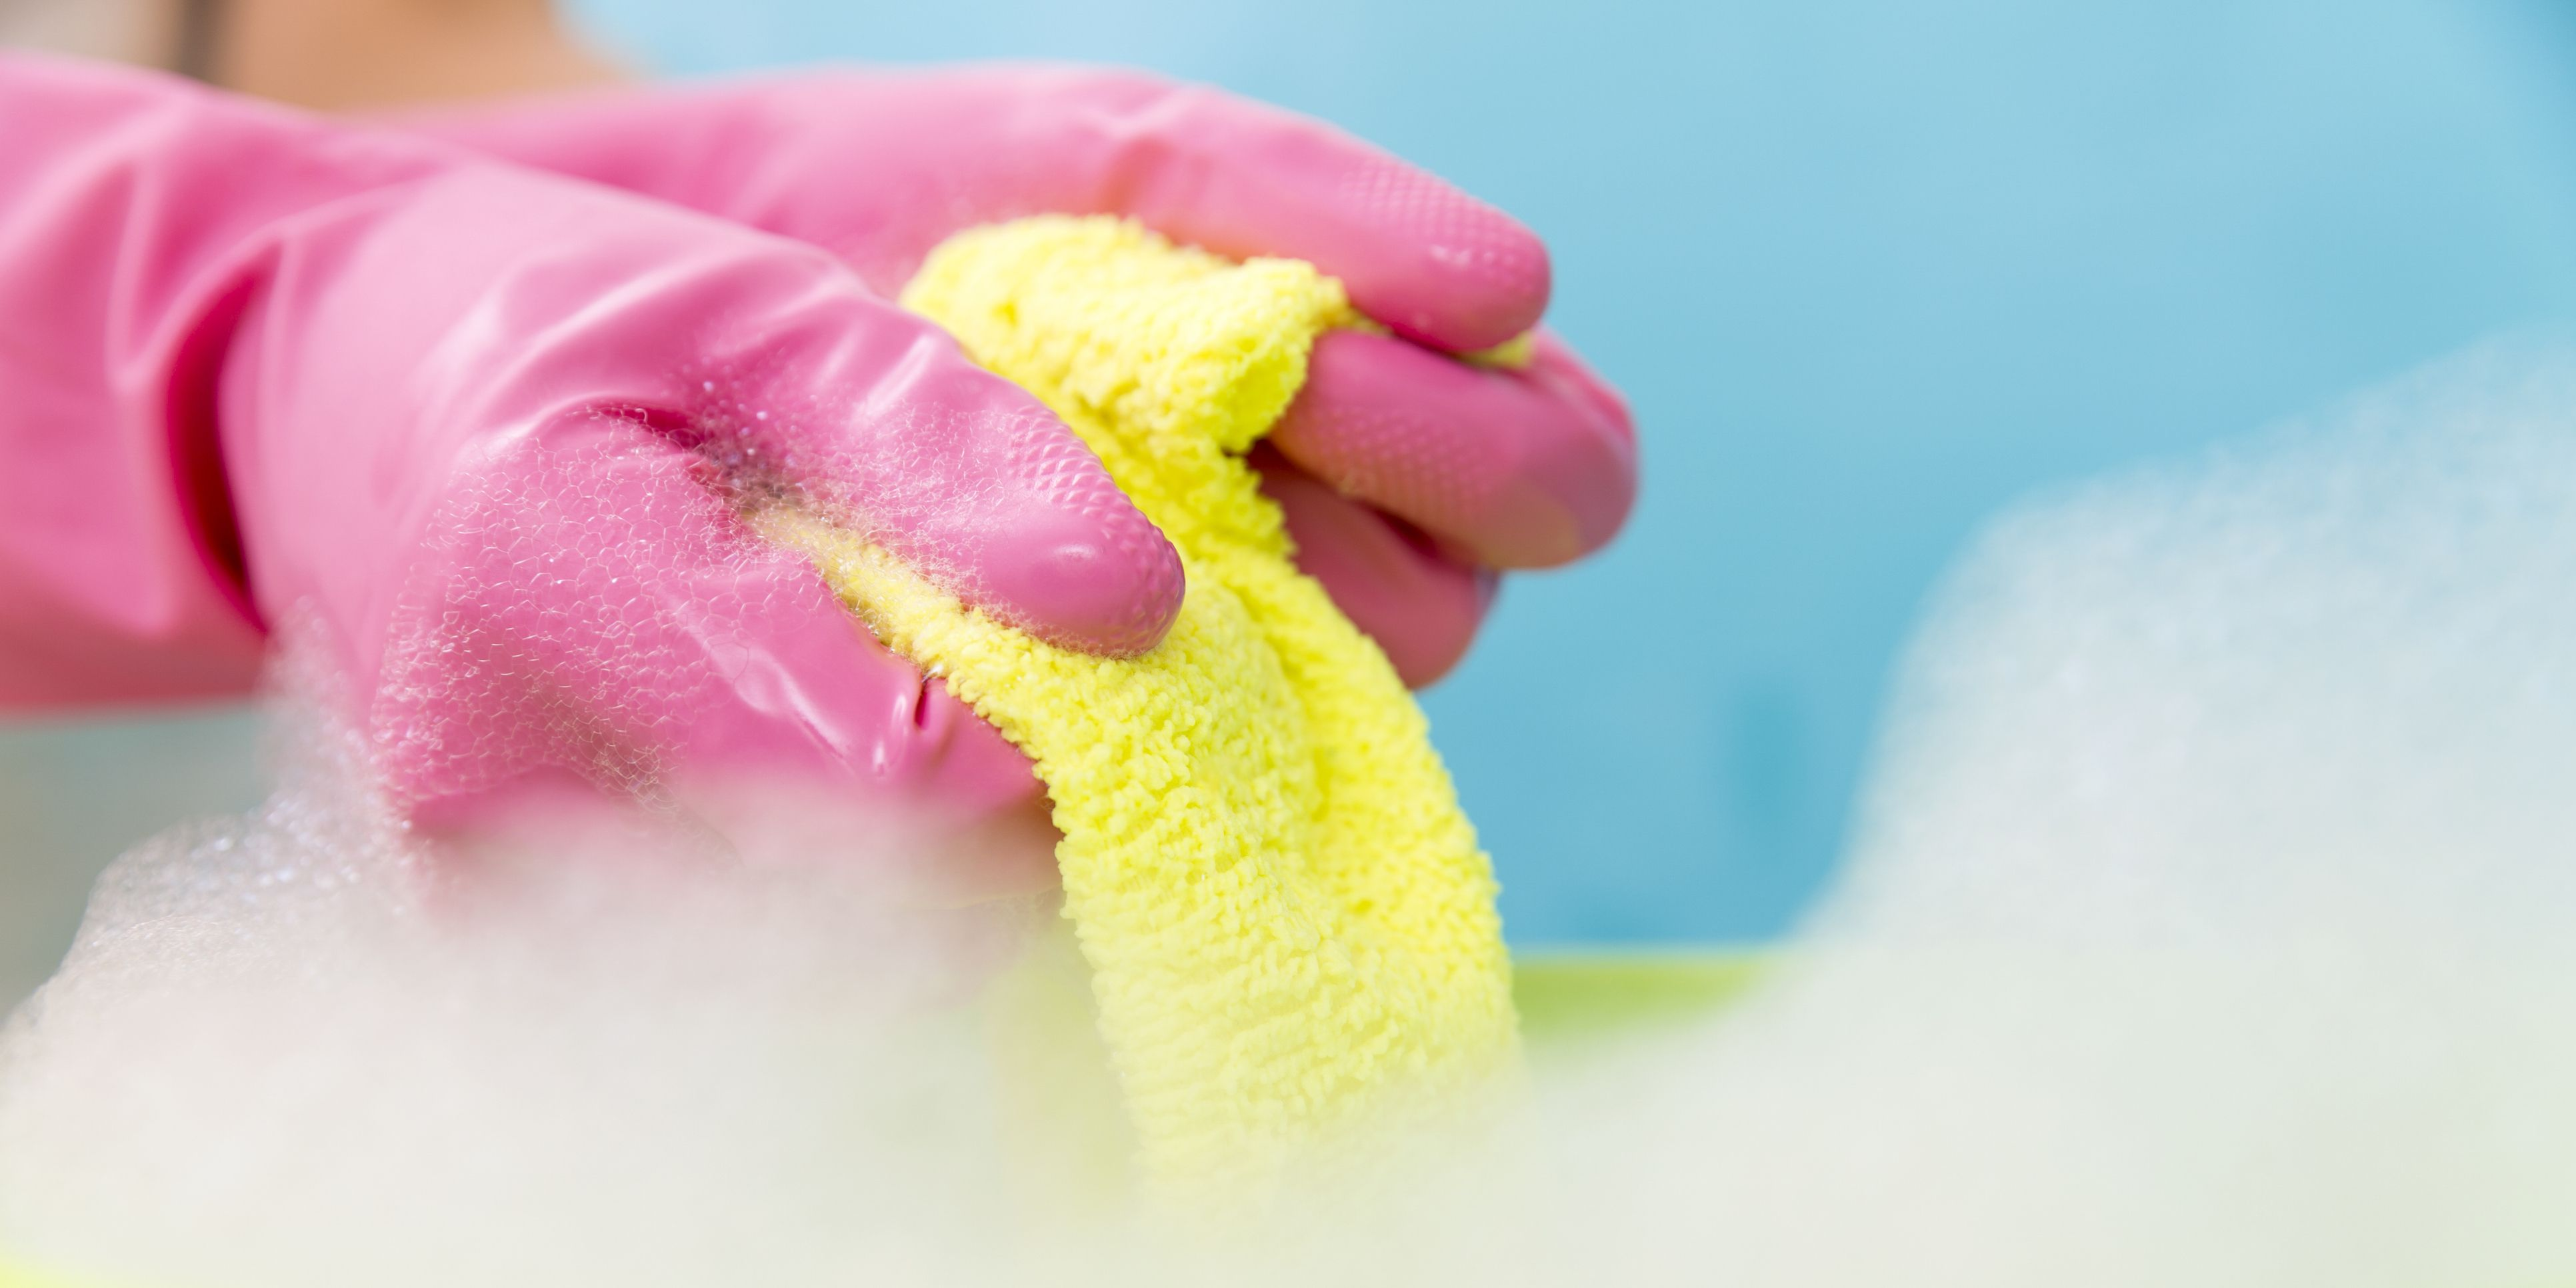 Close-up of cleaner woman hand squeezing cloth in bucket filled with soap